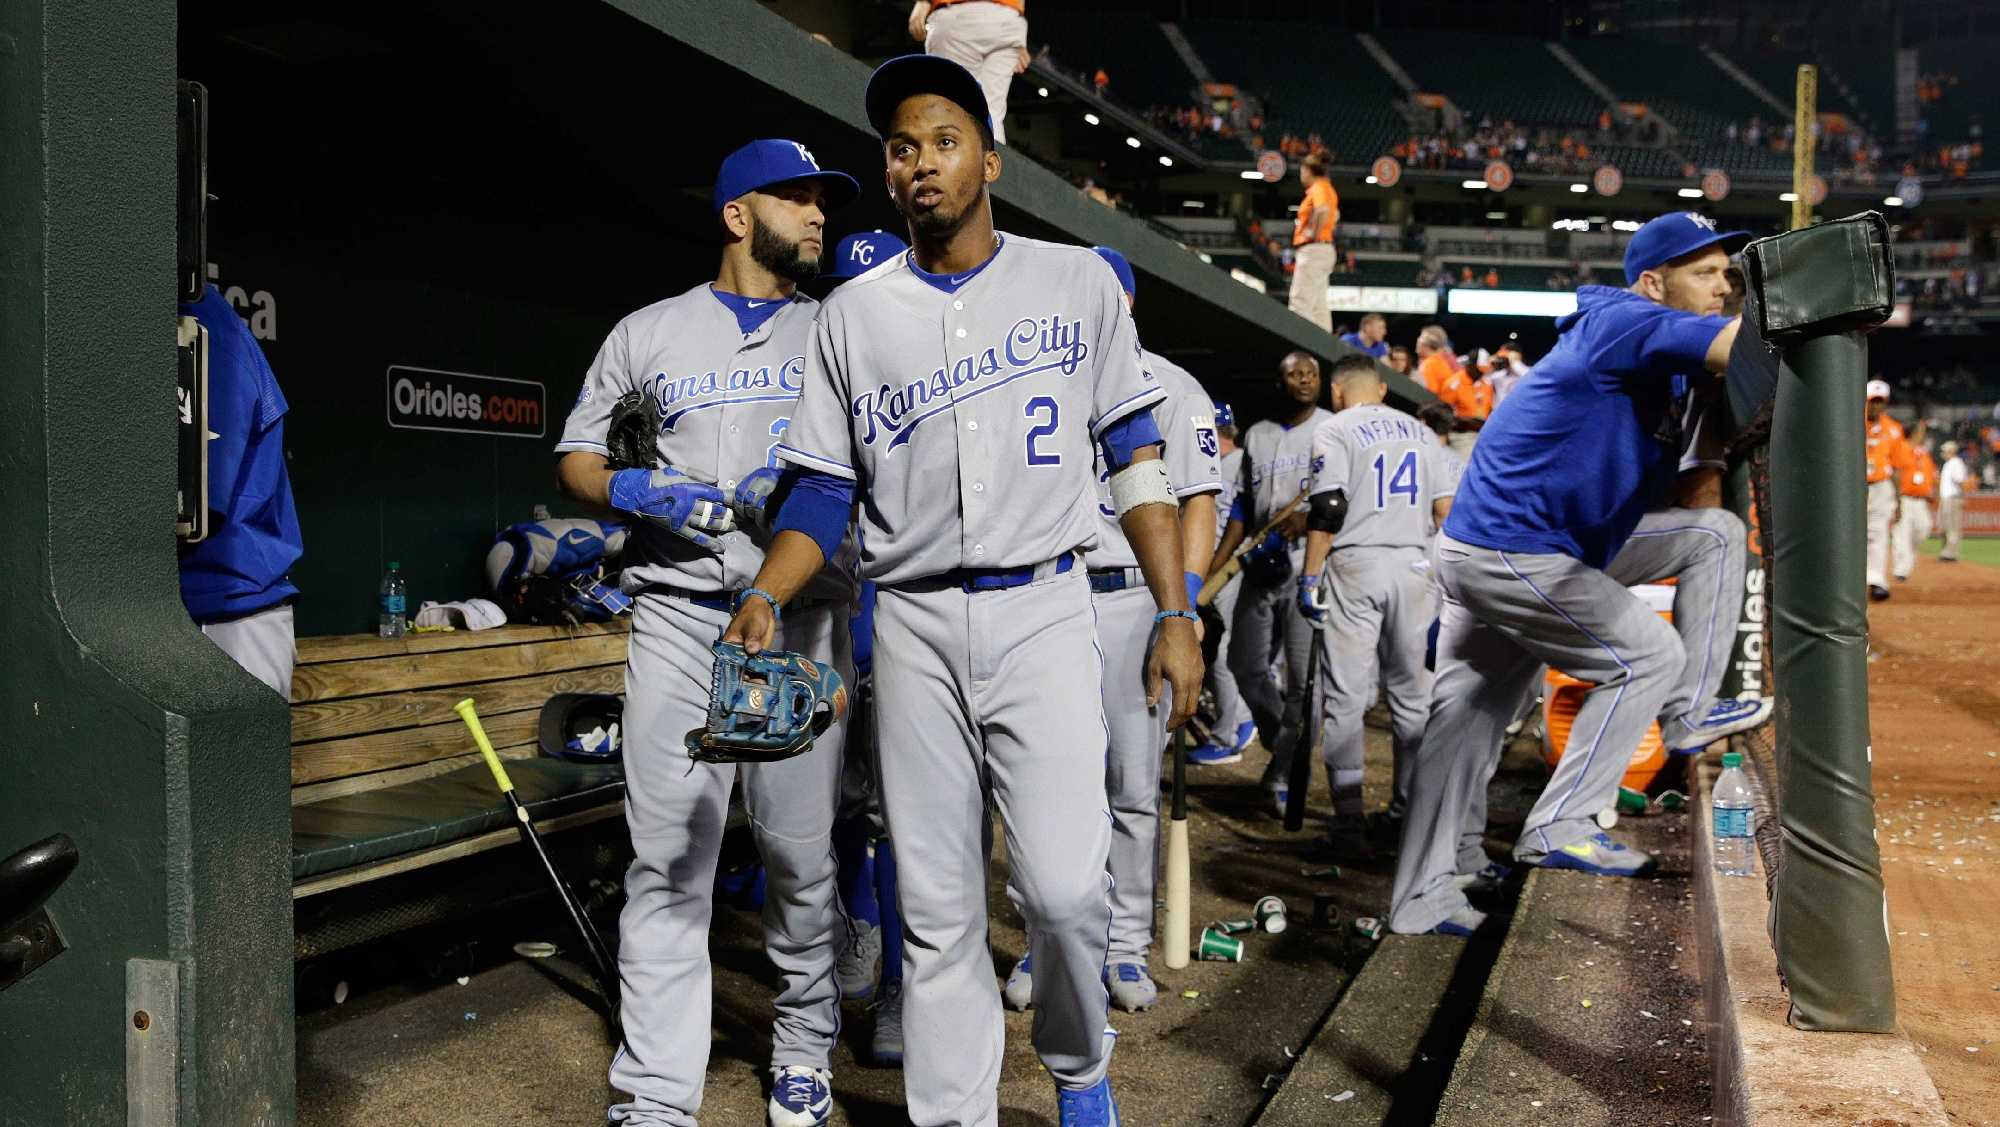 Kansas City Royals' Alcides Escobar (2) walks out of the dugout after a baseball game against the Baltimore Orioles in Baltimore, Monday, June 6, 2016. Baltimore won 4-1. (AP Photo/Patrick Semansky)